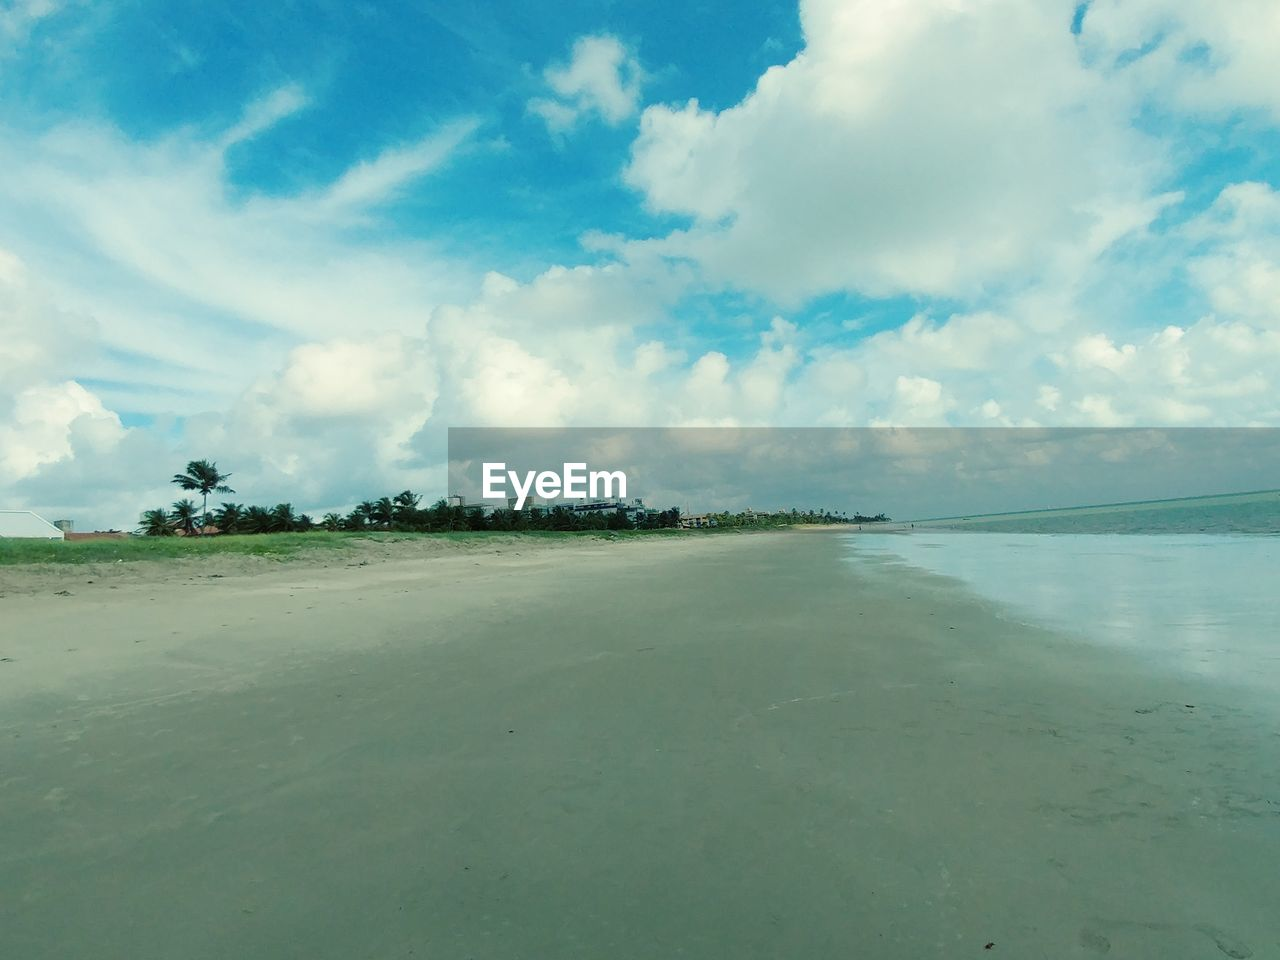 sky, sea, cloud - sky, tranquility, scenics, nature, beauty in nature, tranquil scene, water, beach, day, no people, outdoors, horizon over water, sand, landscape